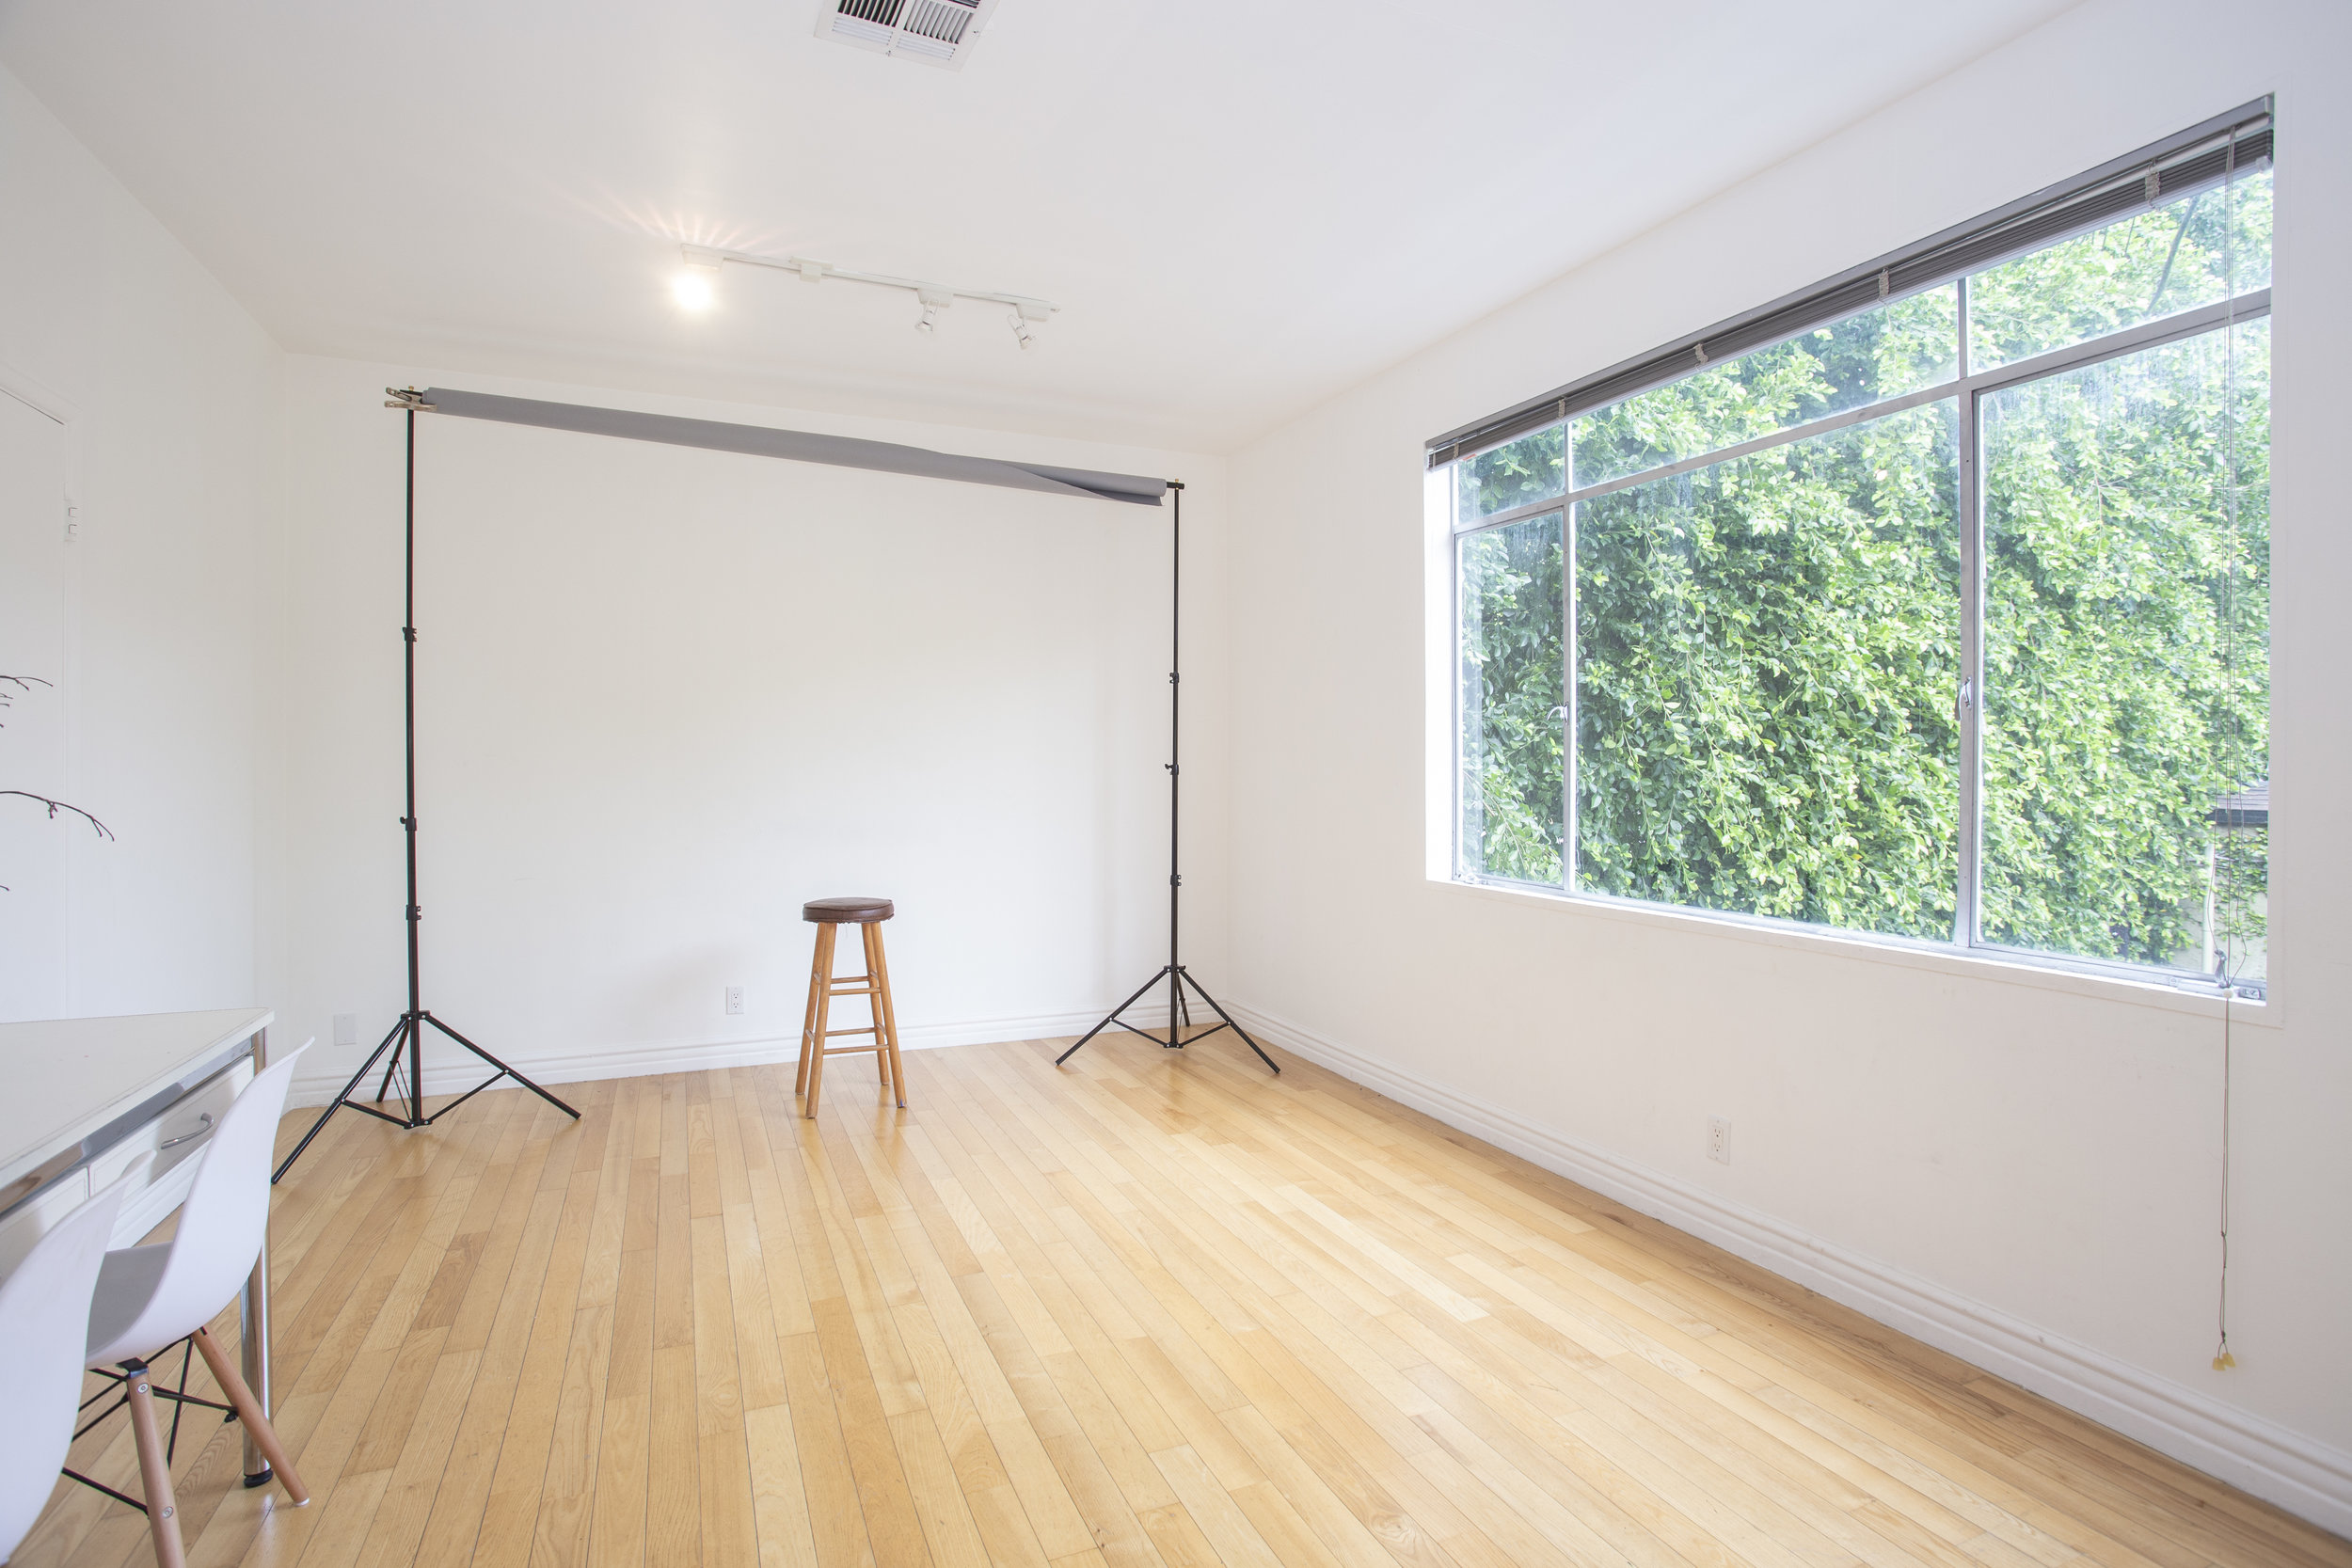 welcome to studio w - Studio W is a multi-functional creative space in West Hollywood available for day rental. At 153 sq. feet (9'x17'), this space is fully adaptable for your next project. The space features amenities such as photo equipment, an extra room for self tapes or hair/makeup and a waiting area. Contact info@wrennmgmt.com or call 310 600 6066 for inquiries, rates, and bookings.